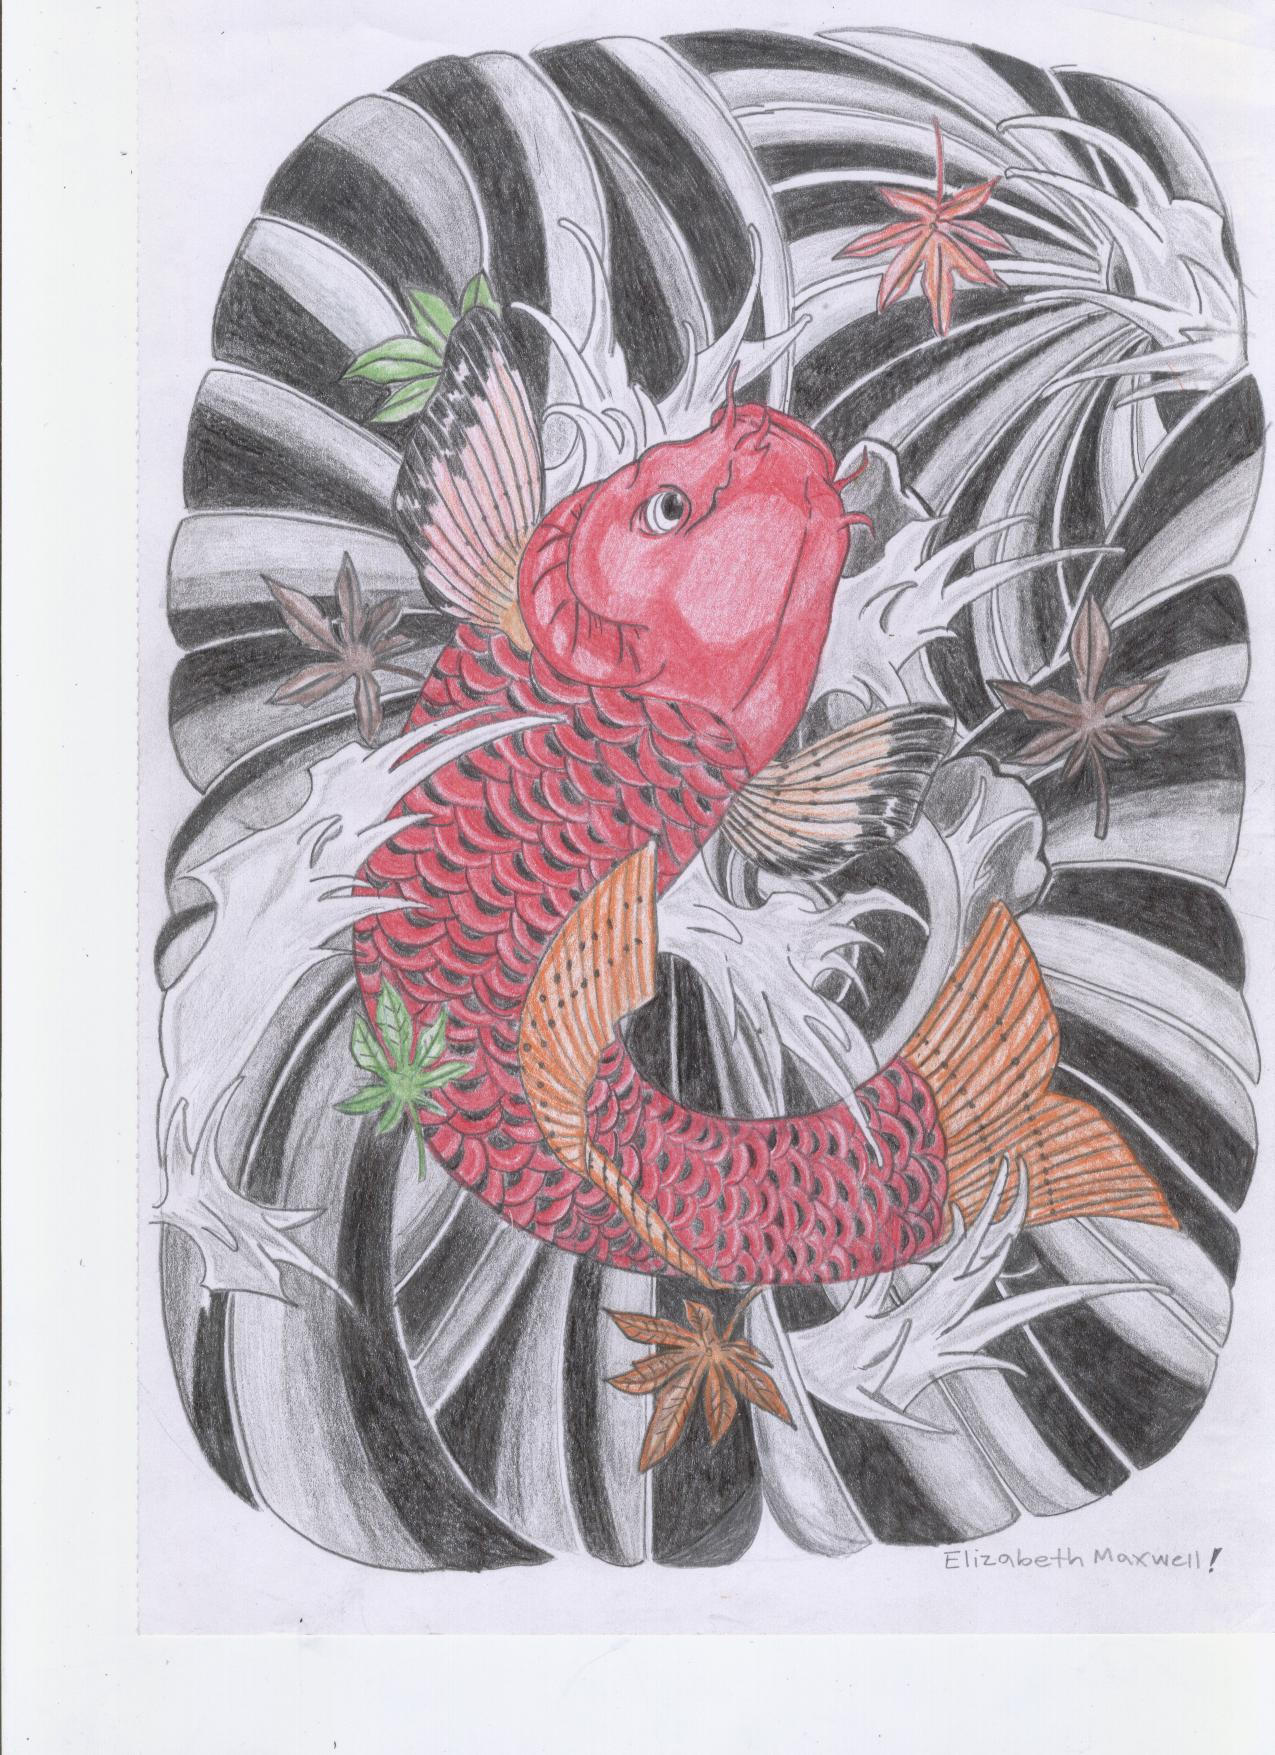 45 Traditional Japanese Koi Fish Tattoo Meaning Designs: -Koi Fish- By Japanese-Koi-Fish On DeviantArt